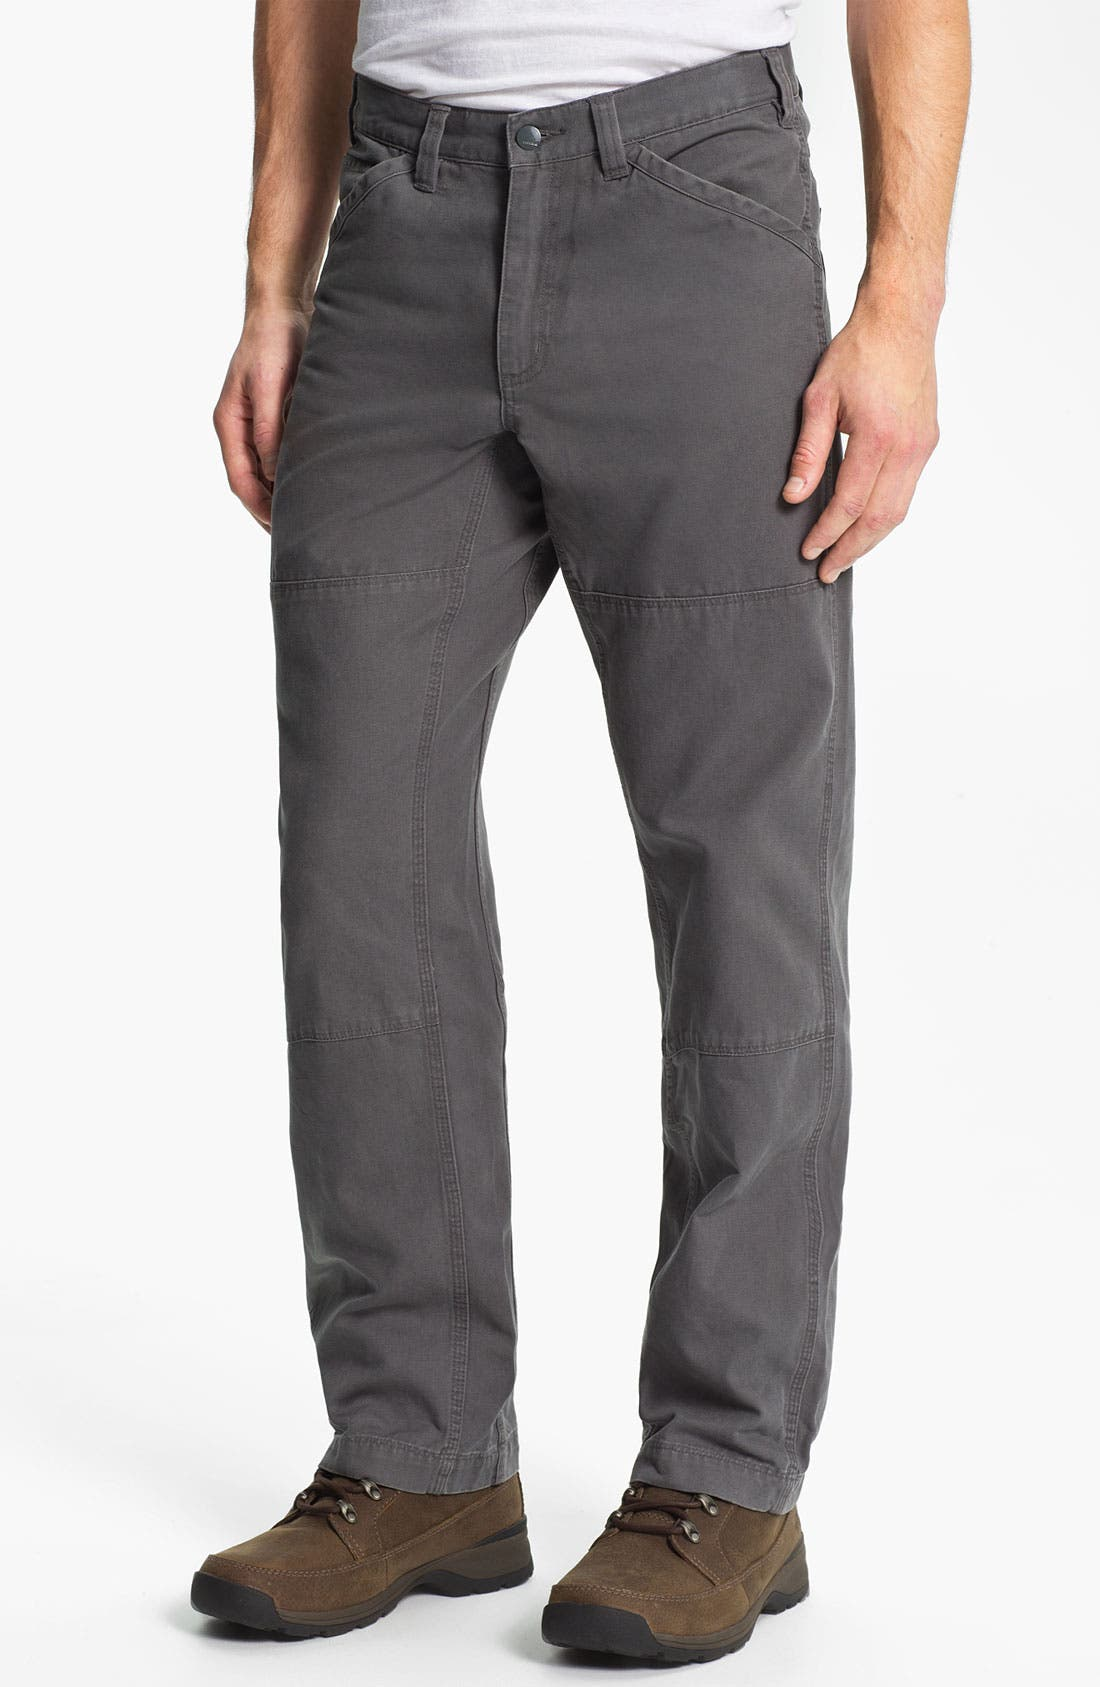 Alternate Image 1 Selected - Toddland 'Yosemite' Straight Leg Pants (Online Exclusive)